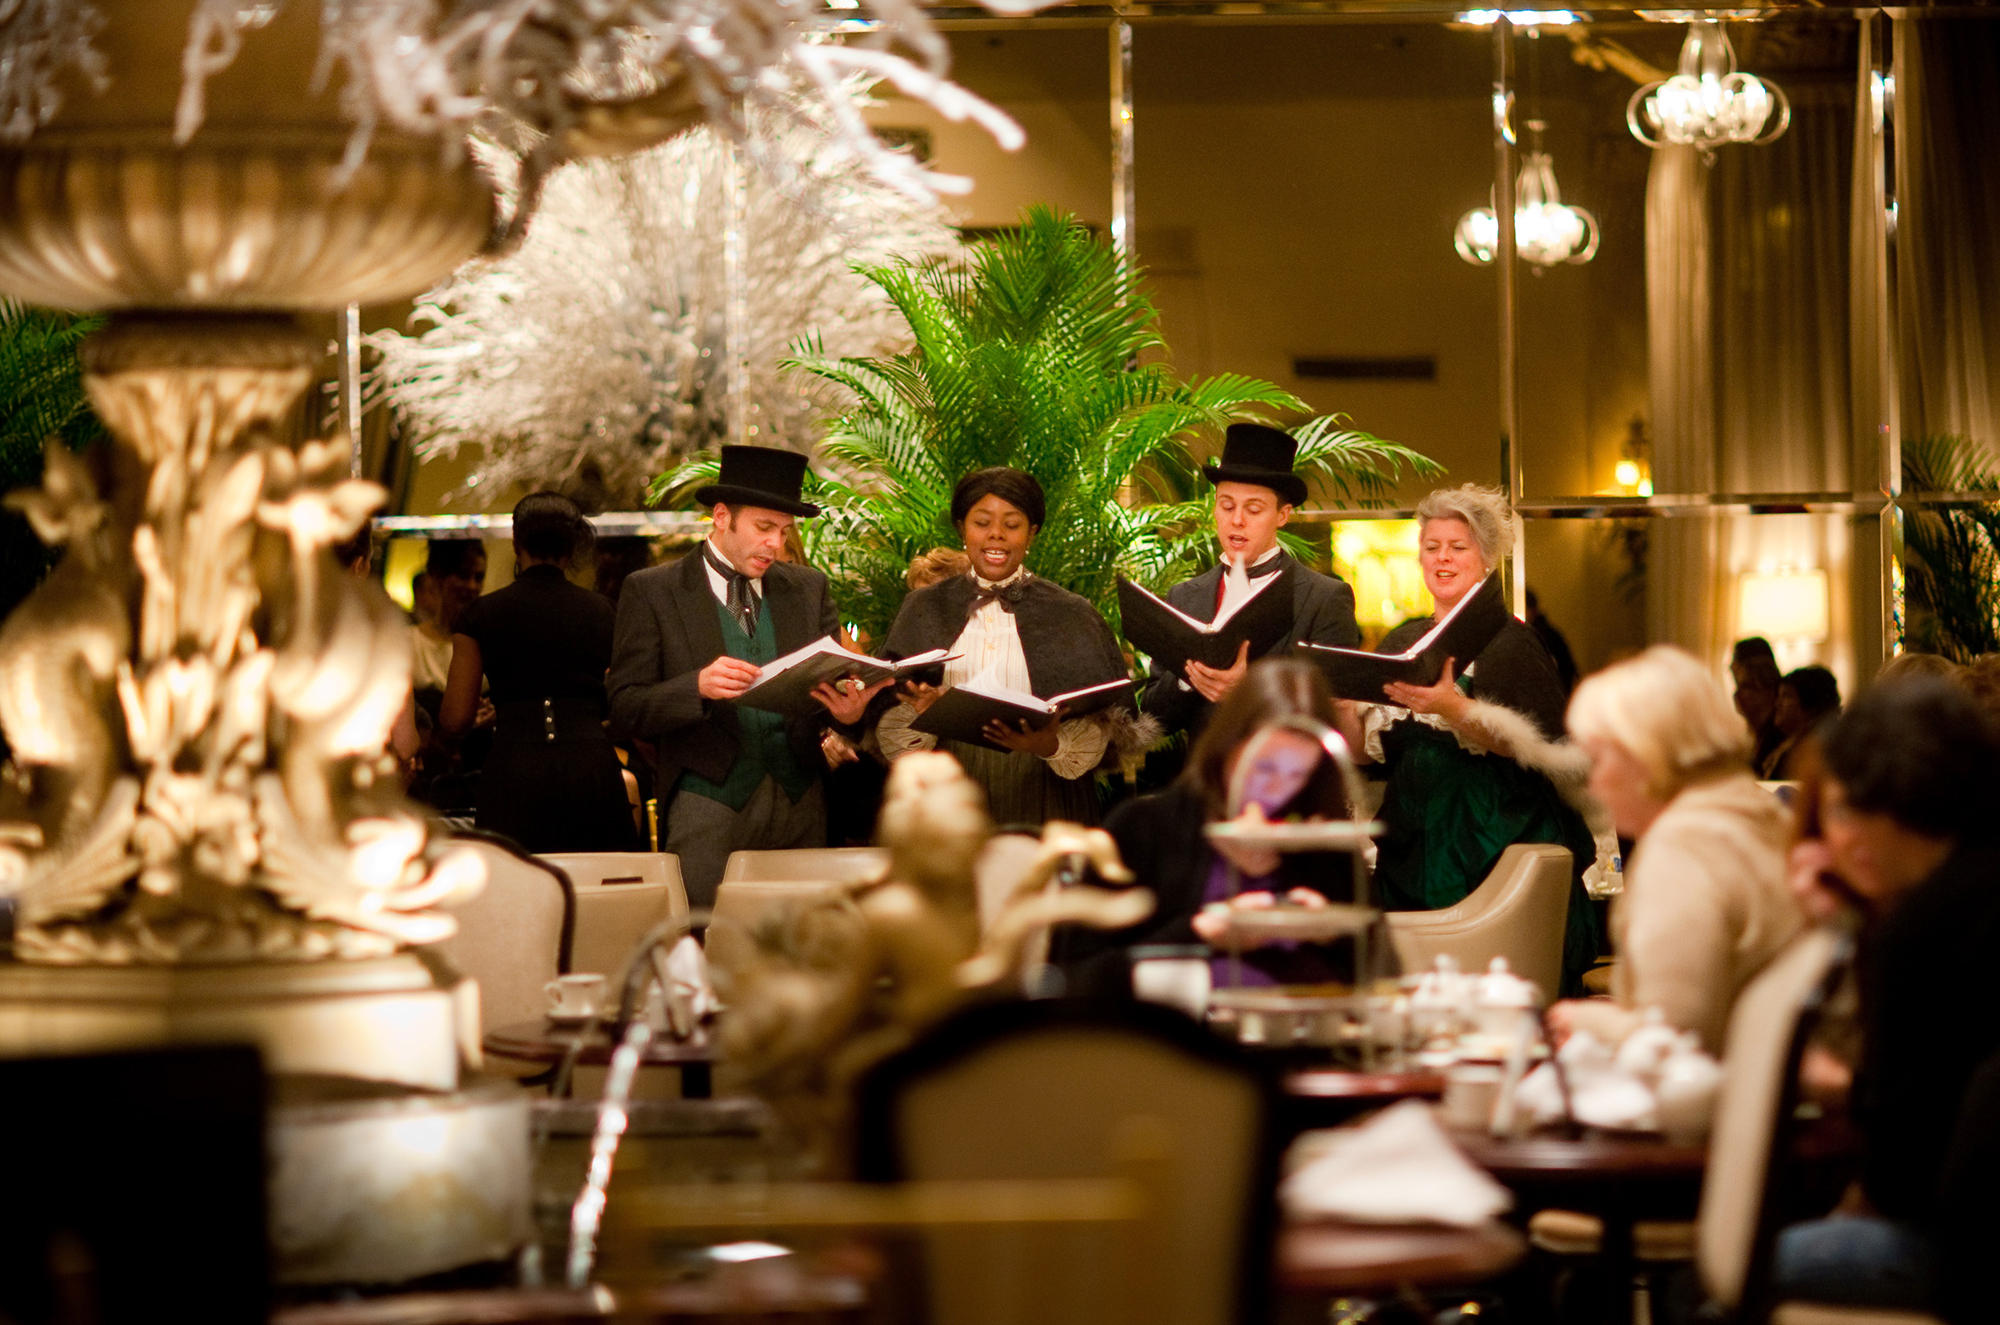 e6b65d33af Carolers sing during Christmas tea at the Drake Hotel in Chicago. In some  fancy hotels, Christmas tea has become a refined respite for harried holiday  ...